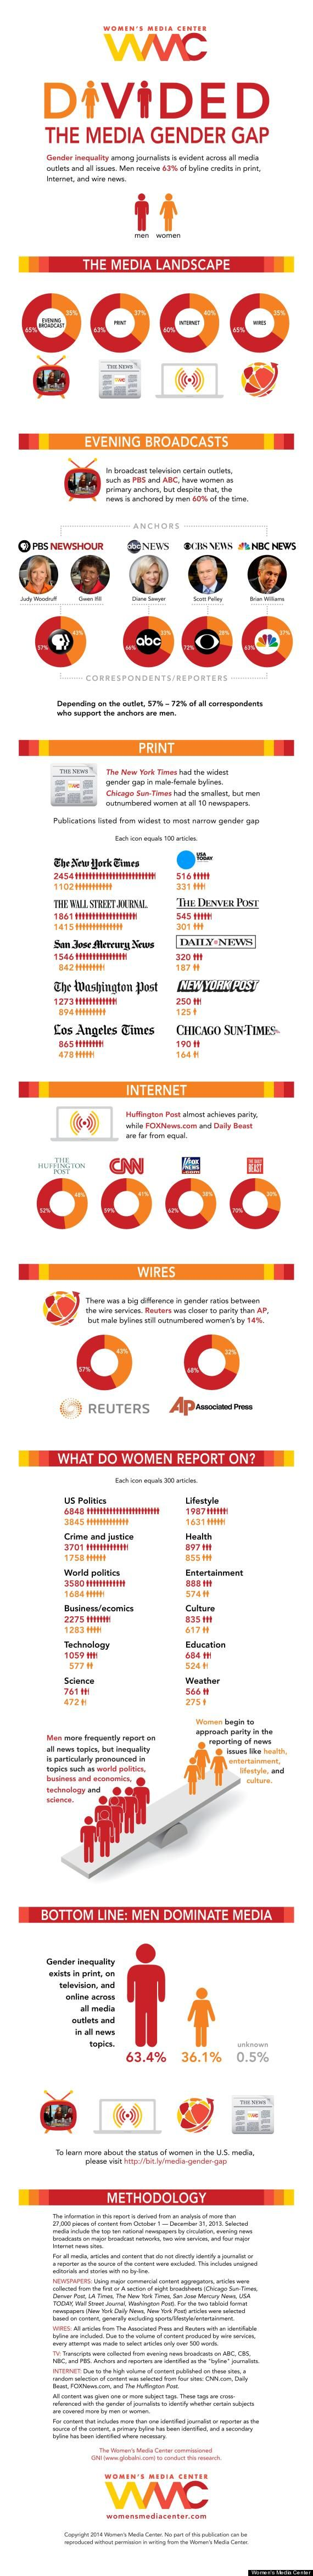 Time to tune in to the media gender gap: here's a beautiful and depressing #infographic from the WMC! #womeninmedia